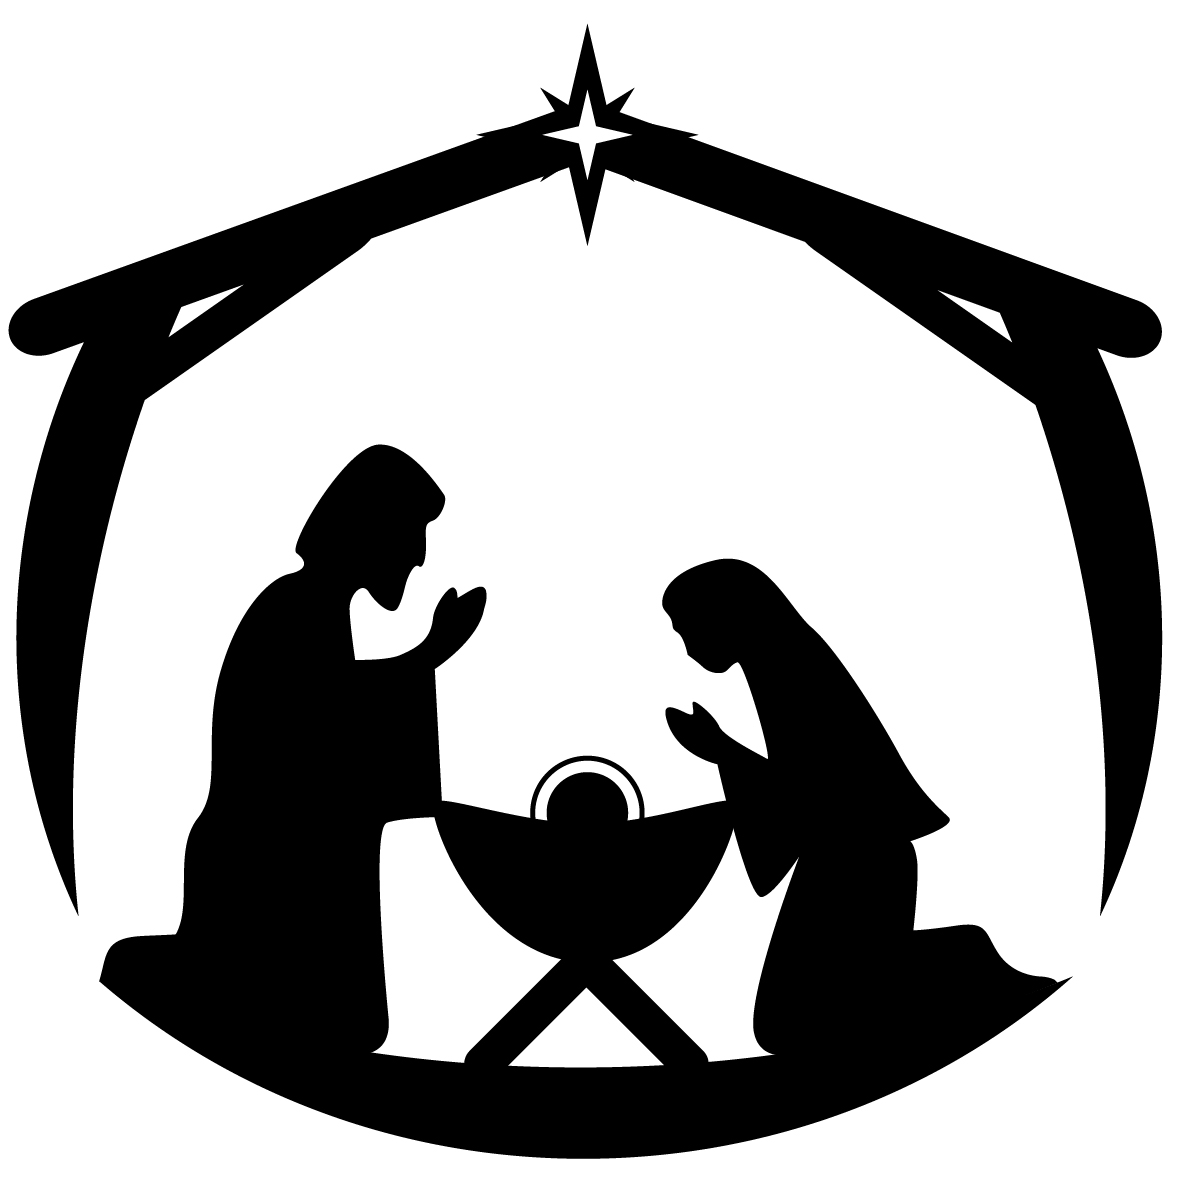 Line Drawing Nativity : Christmas crib line drawing creative ideas of baby cribs